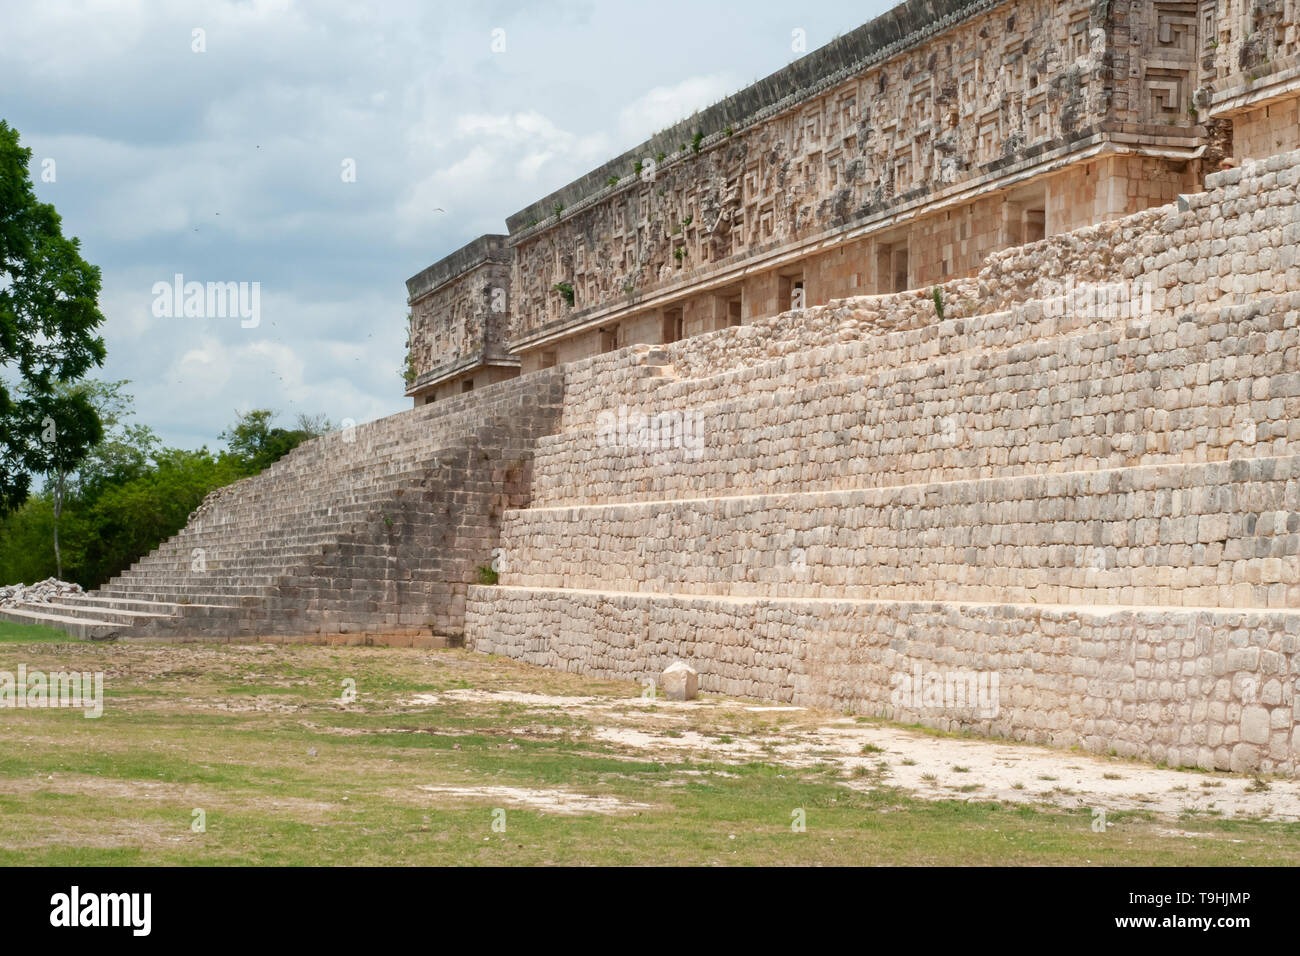 Entrance stairs of a Mayan temple, in the archaeological area of Ek Balam, on the Yucatan peninsula - Stock Image